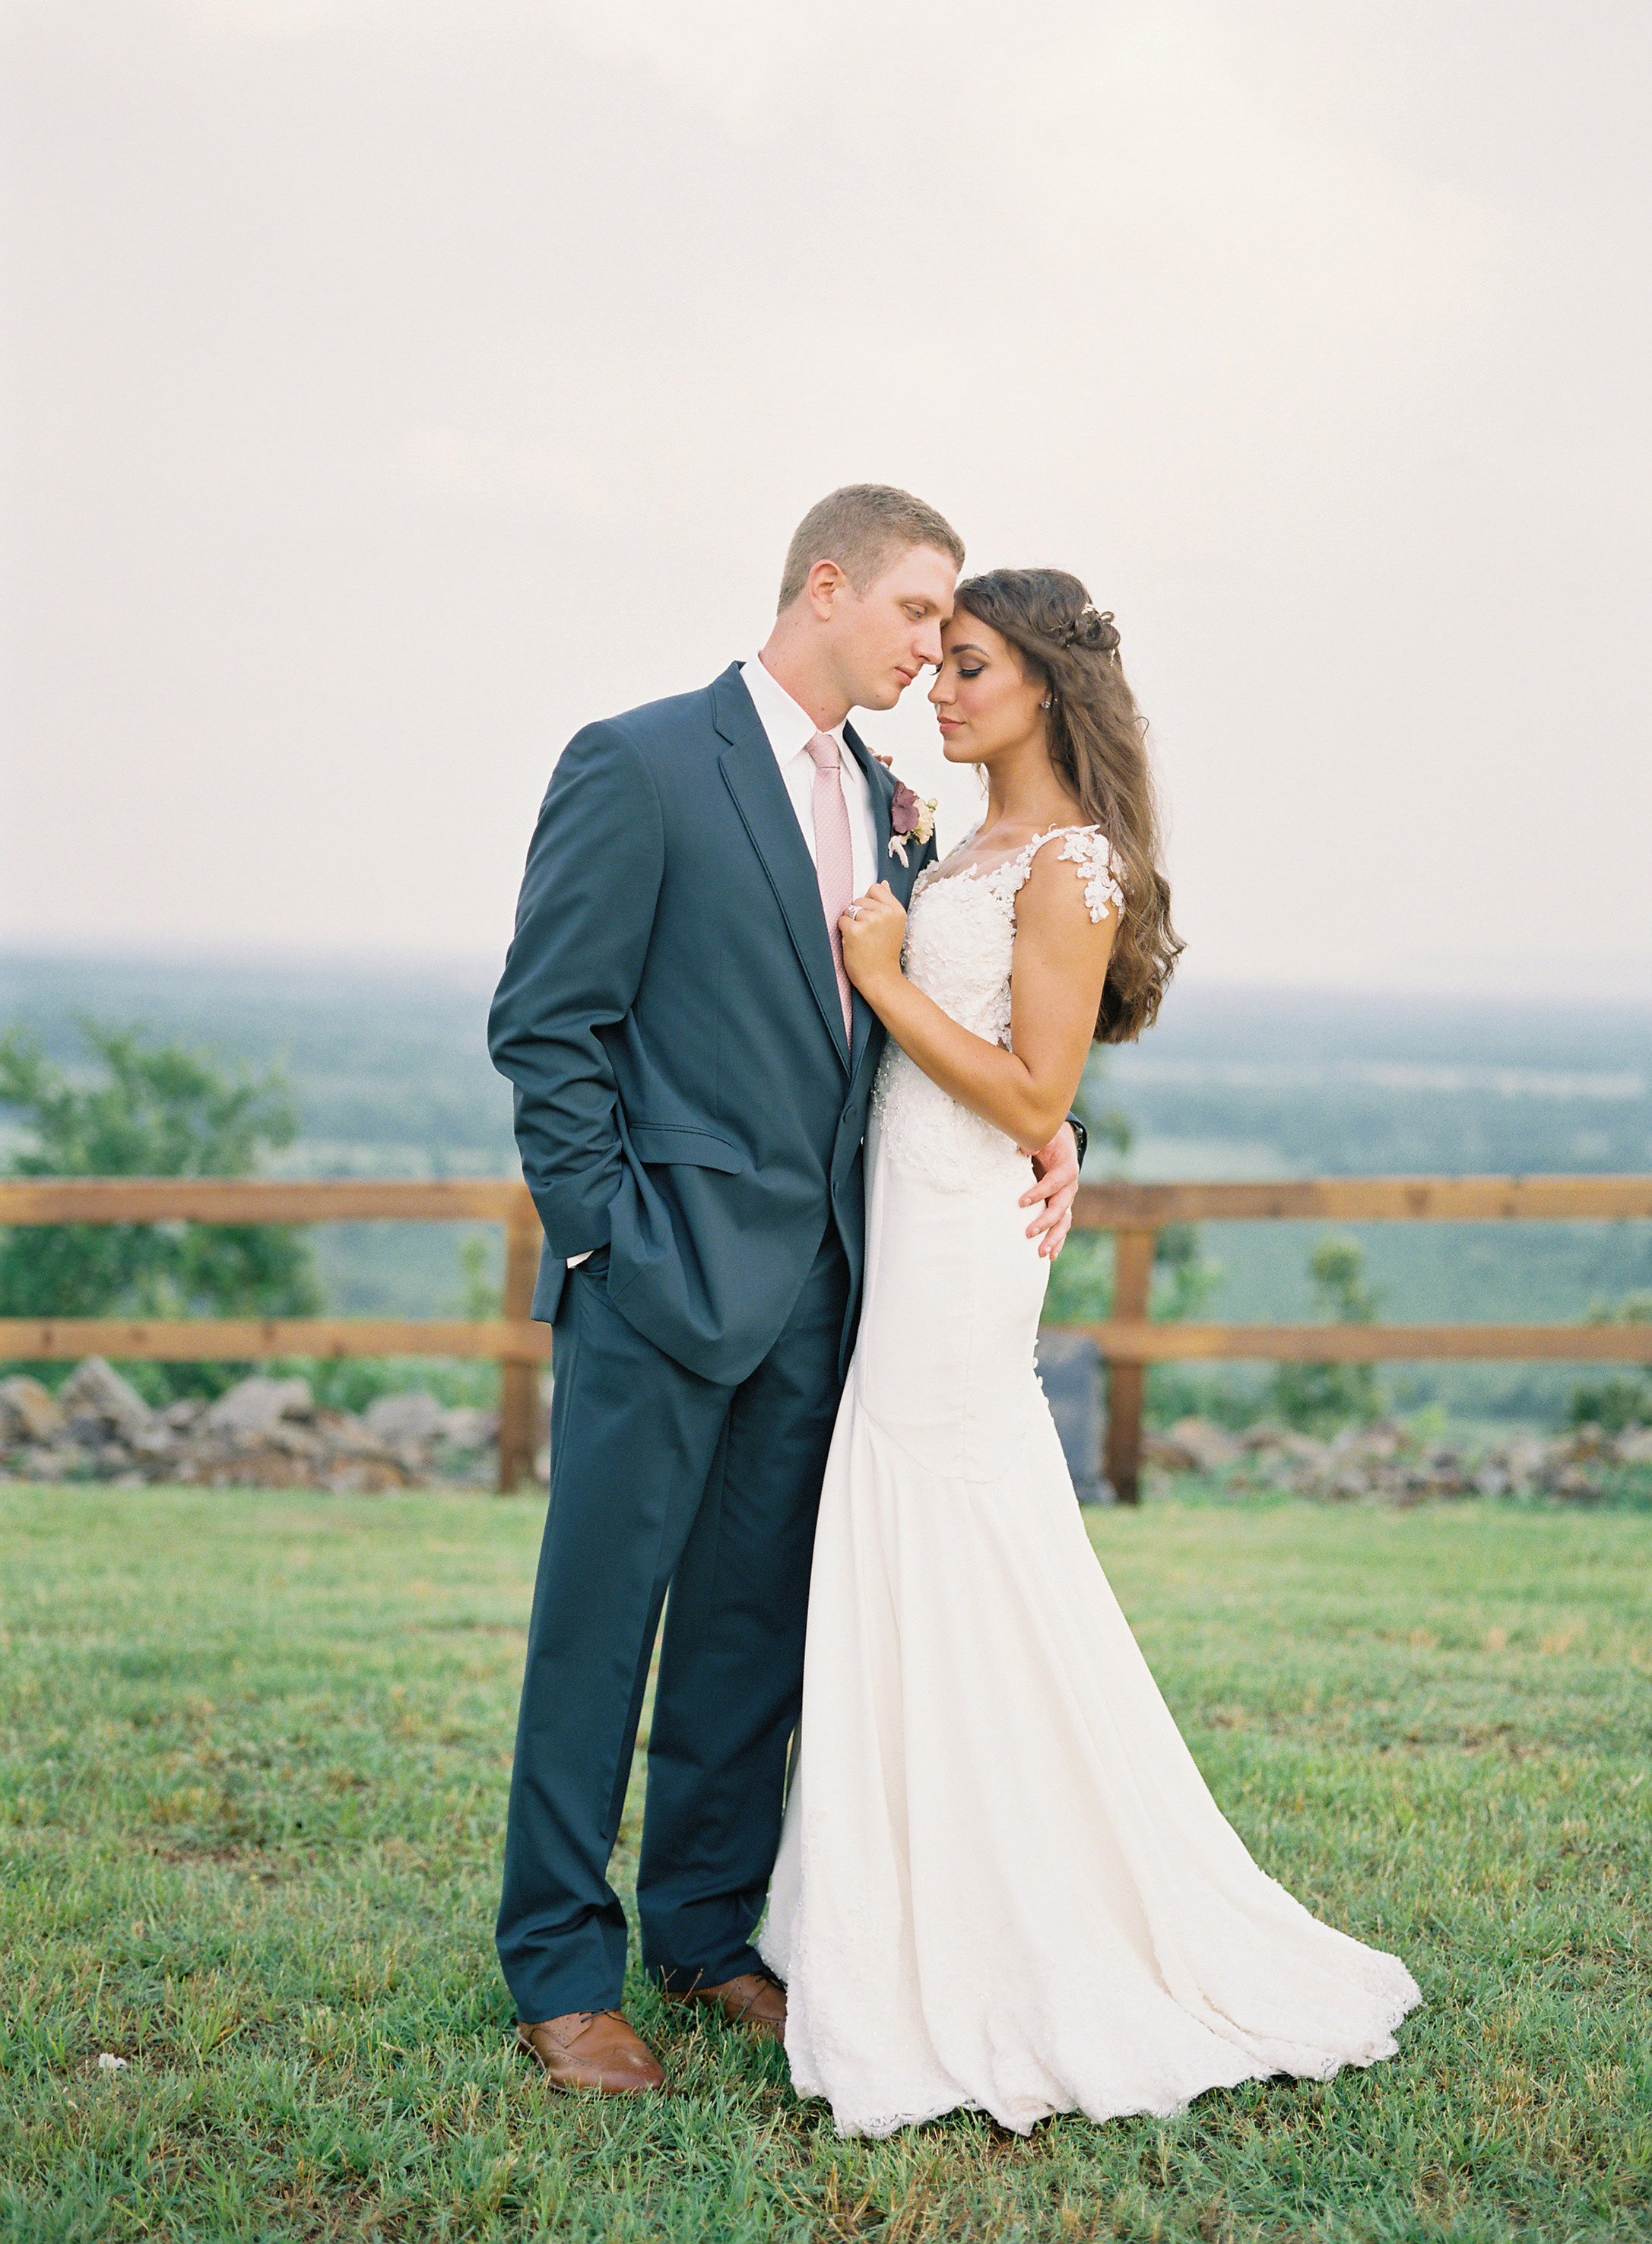 wedding couple pose outdoors river valley view fence